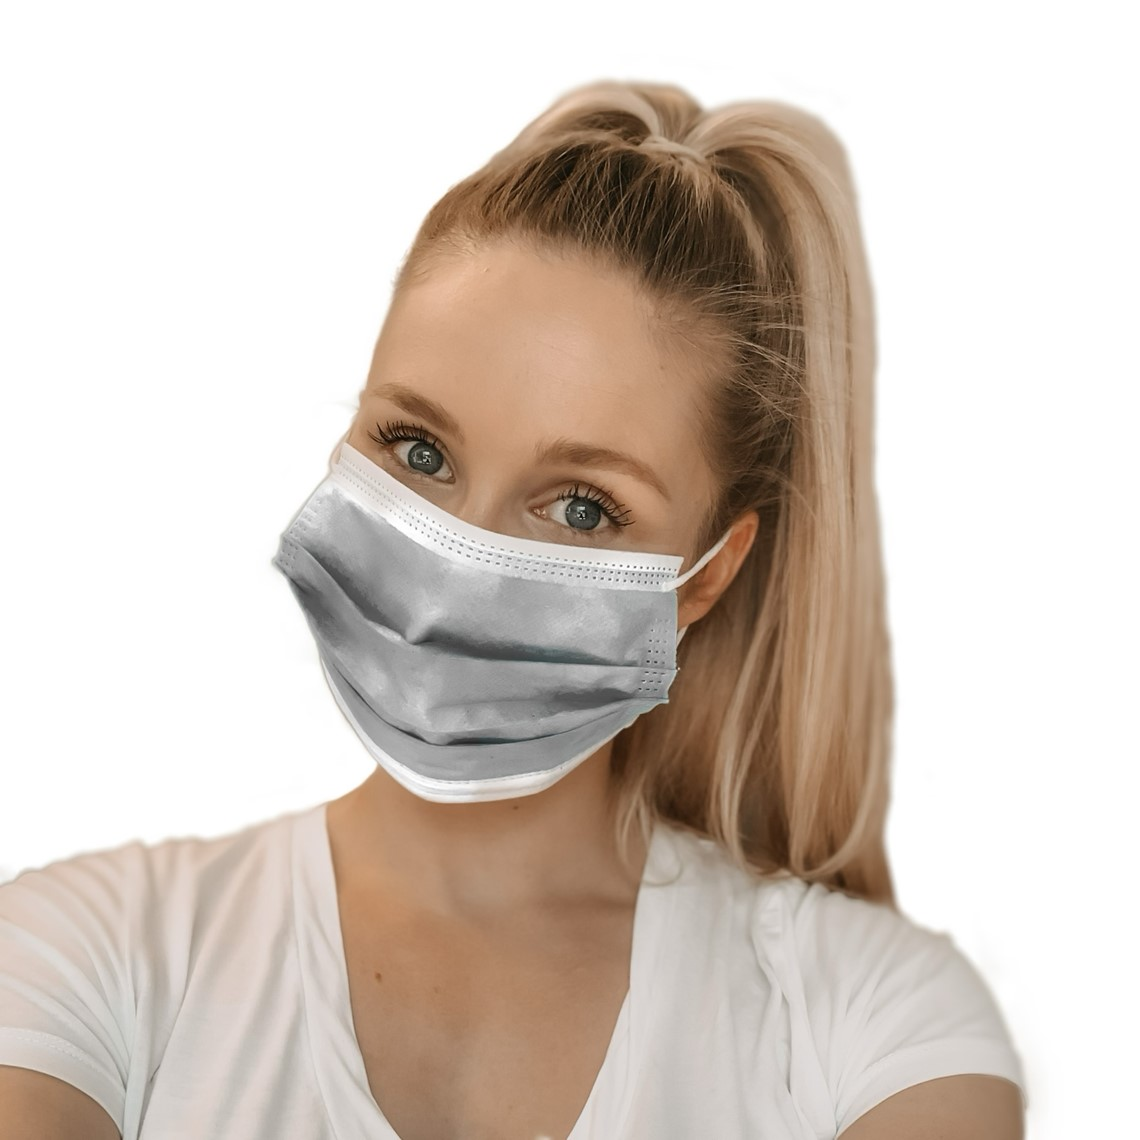 MASKNE: HOW TO PREVENT BLEMISHES AND ANCE WHILE WEARING A FACE MASK